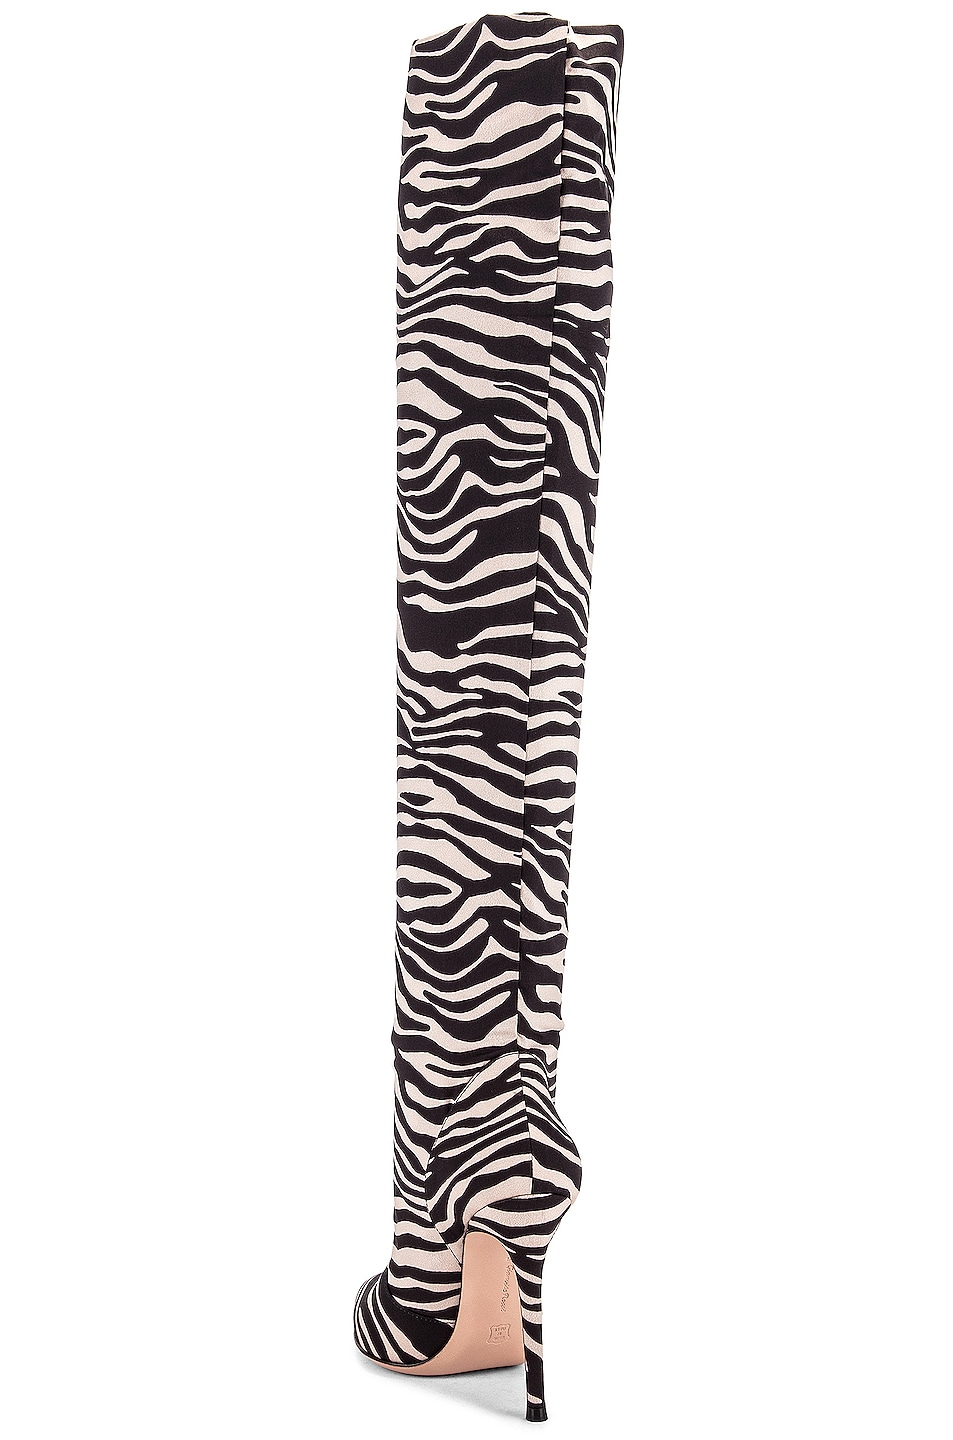 Image 3 of Gianvito Rossi Suede Knee High Boots in Zebra